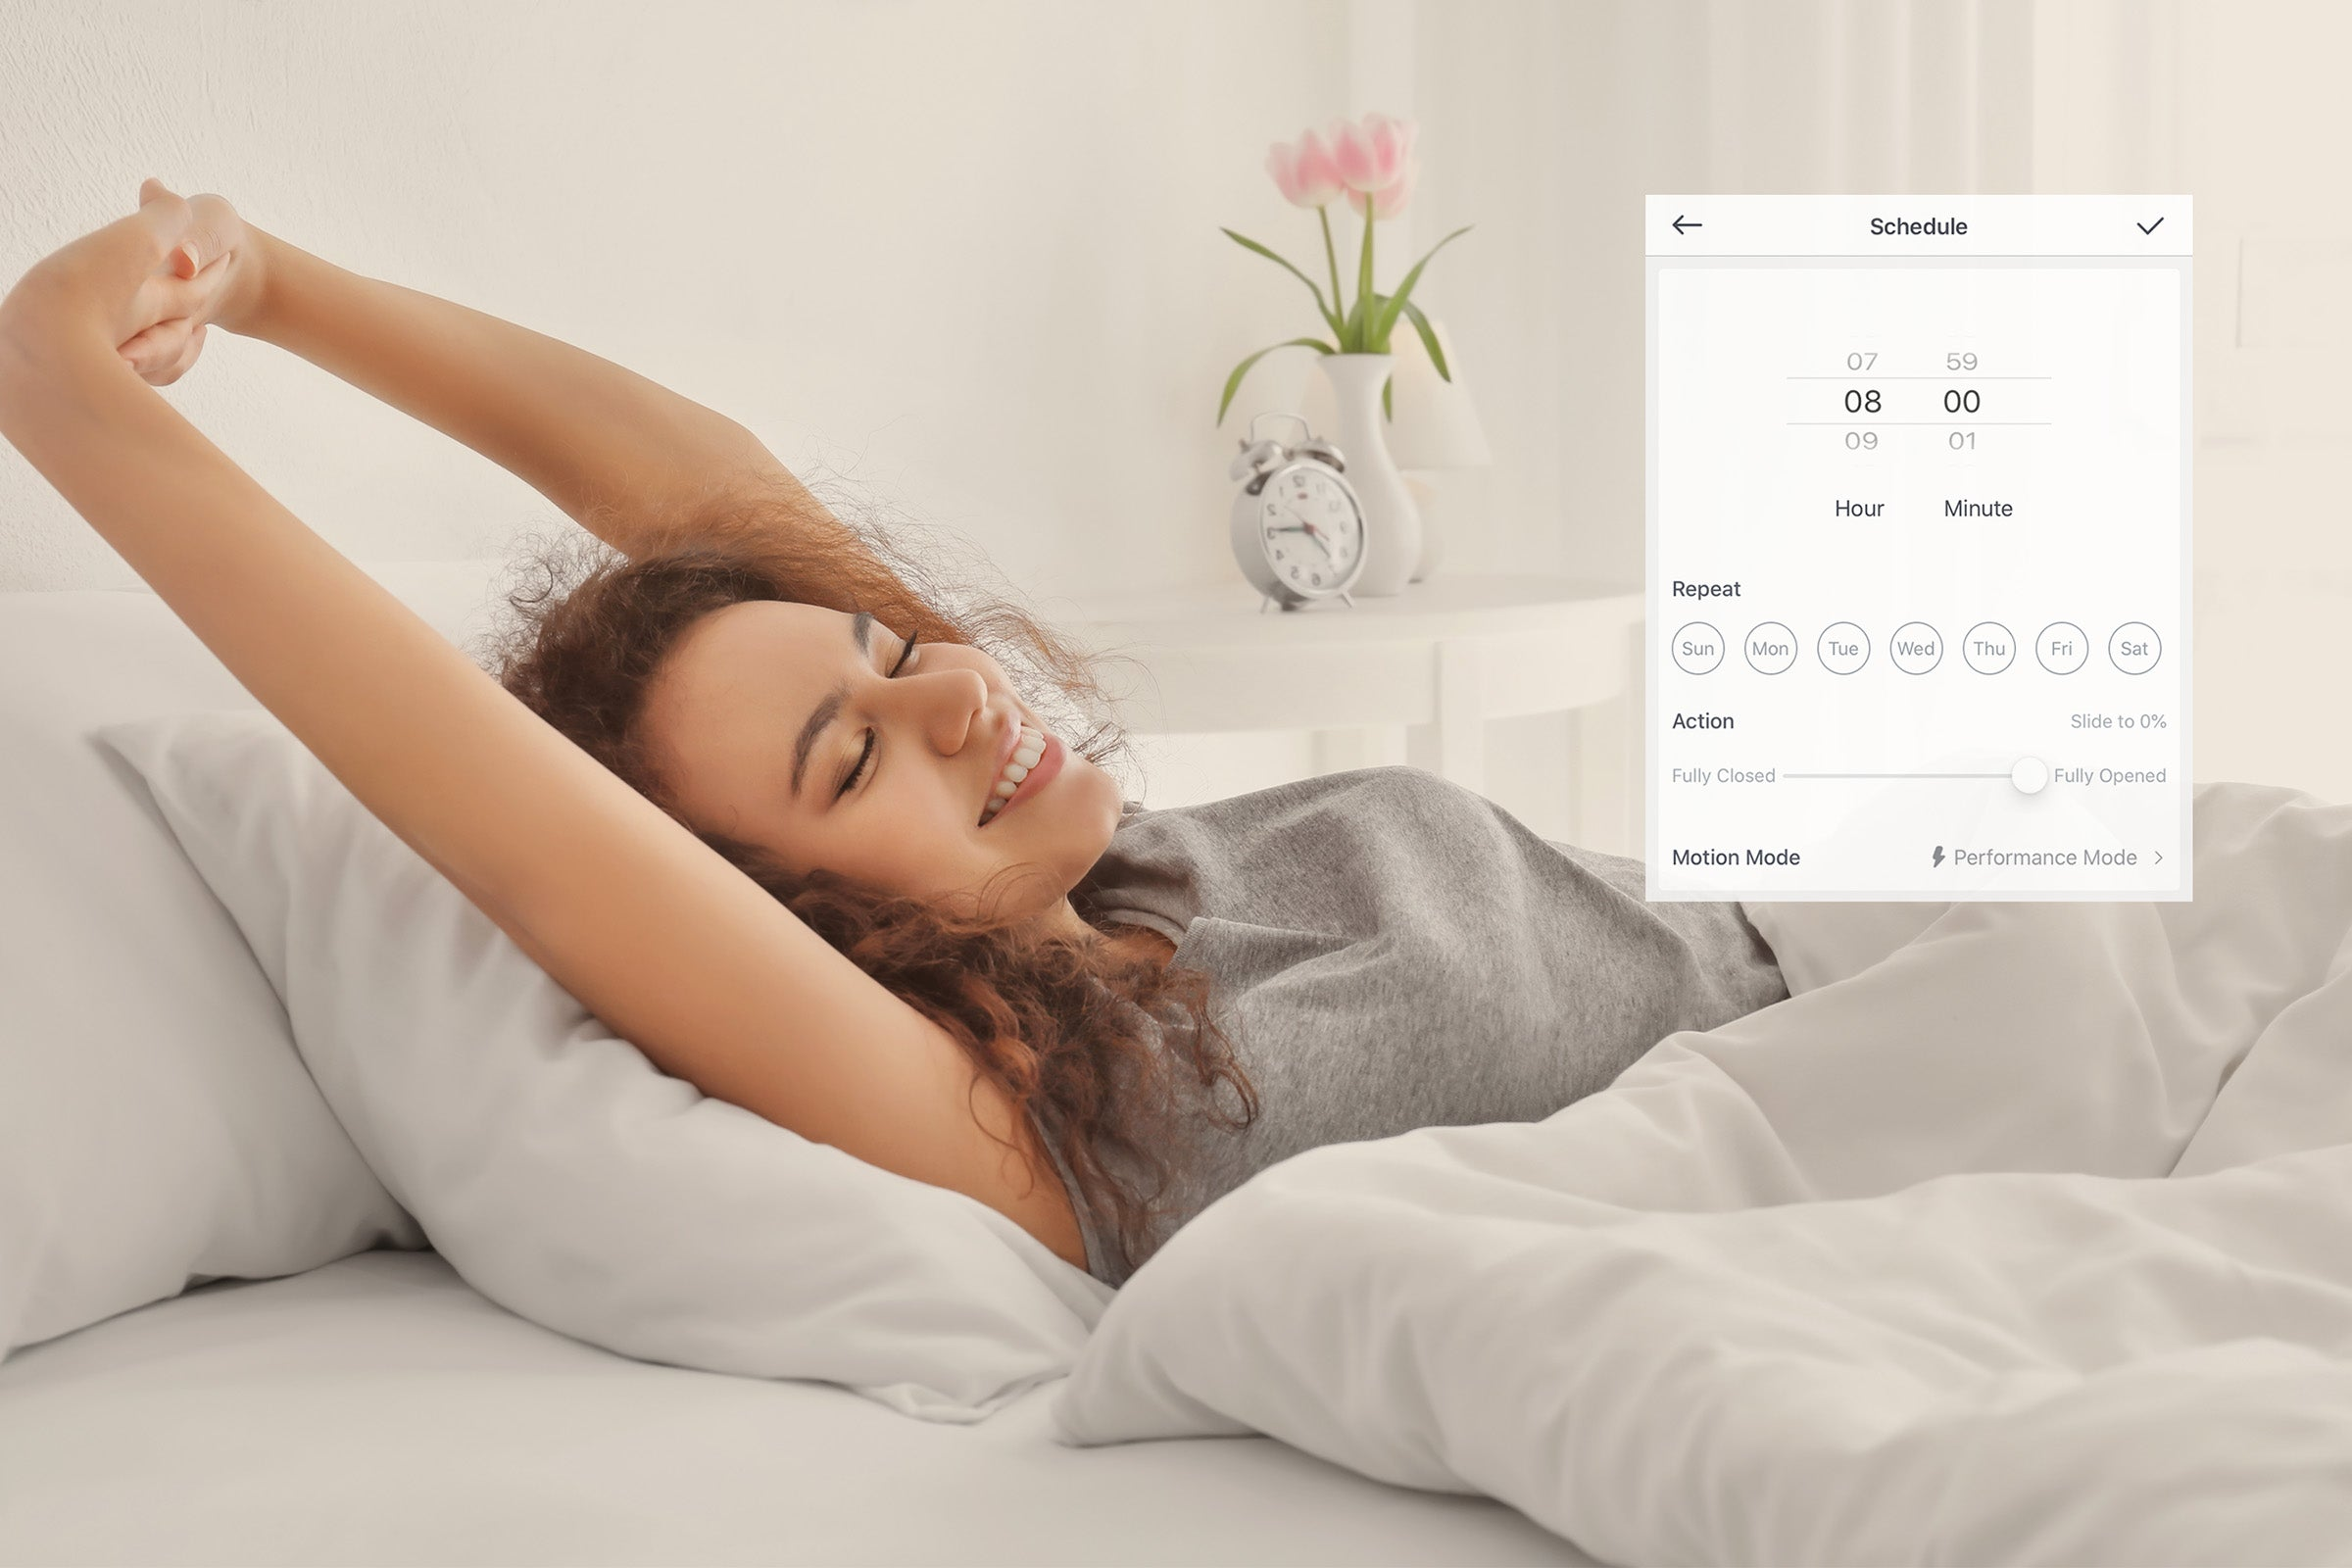 Struggling with the alarms in weekdays'morning? Let the SwitchBot Curtain save you.Set up a scheduleon yourphone, your curtains will be automatically opened before your alarm goes off.